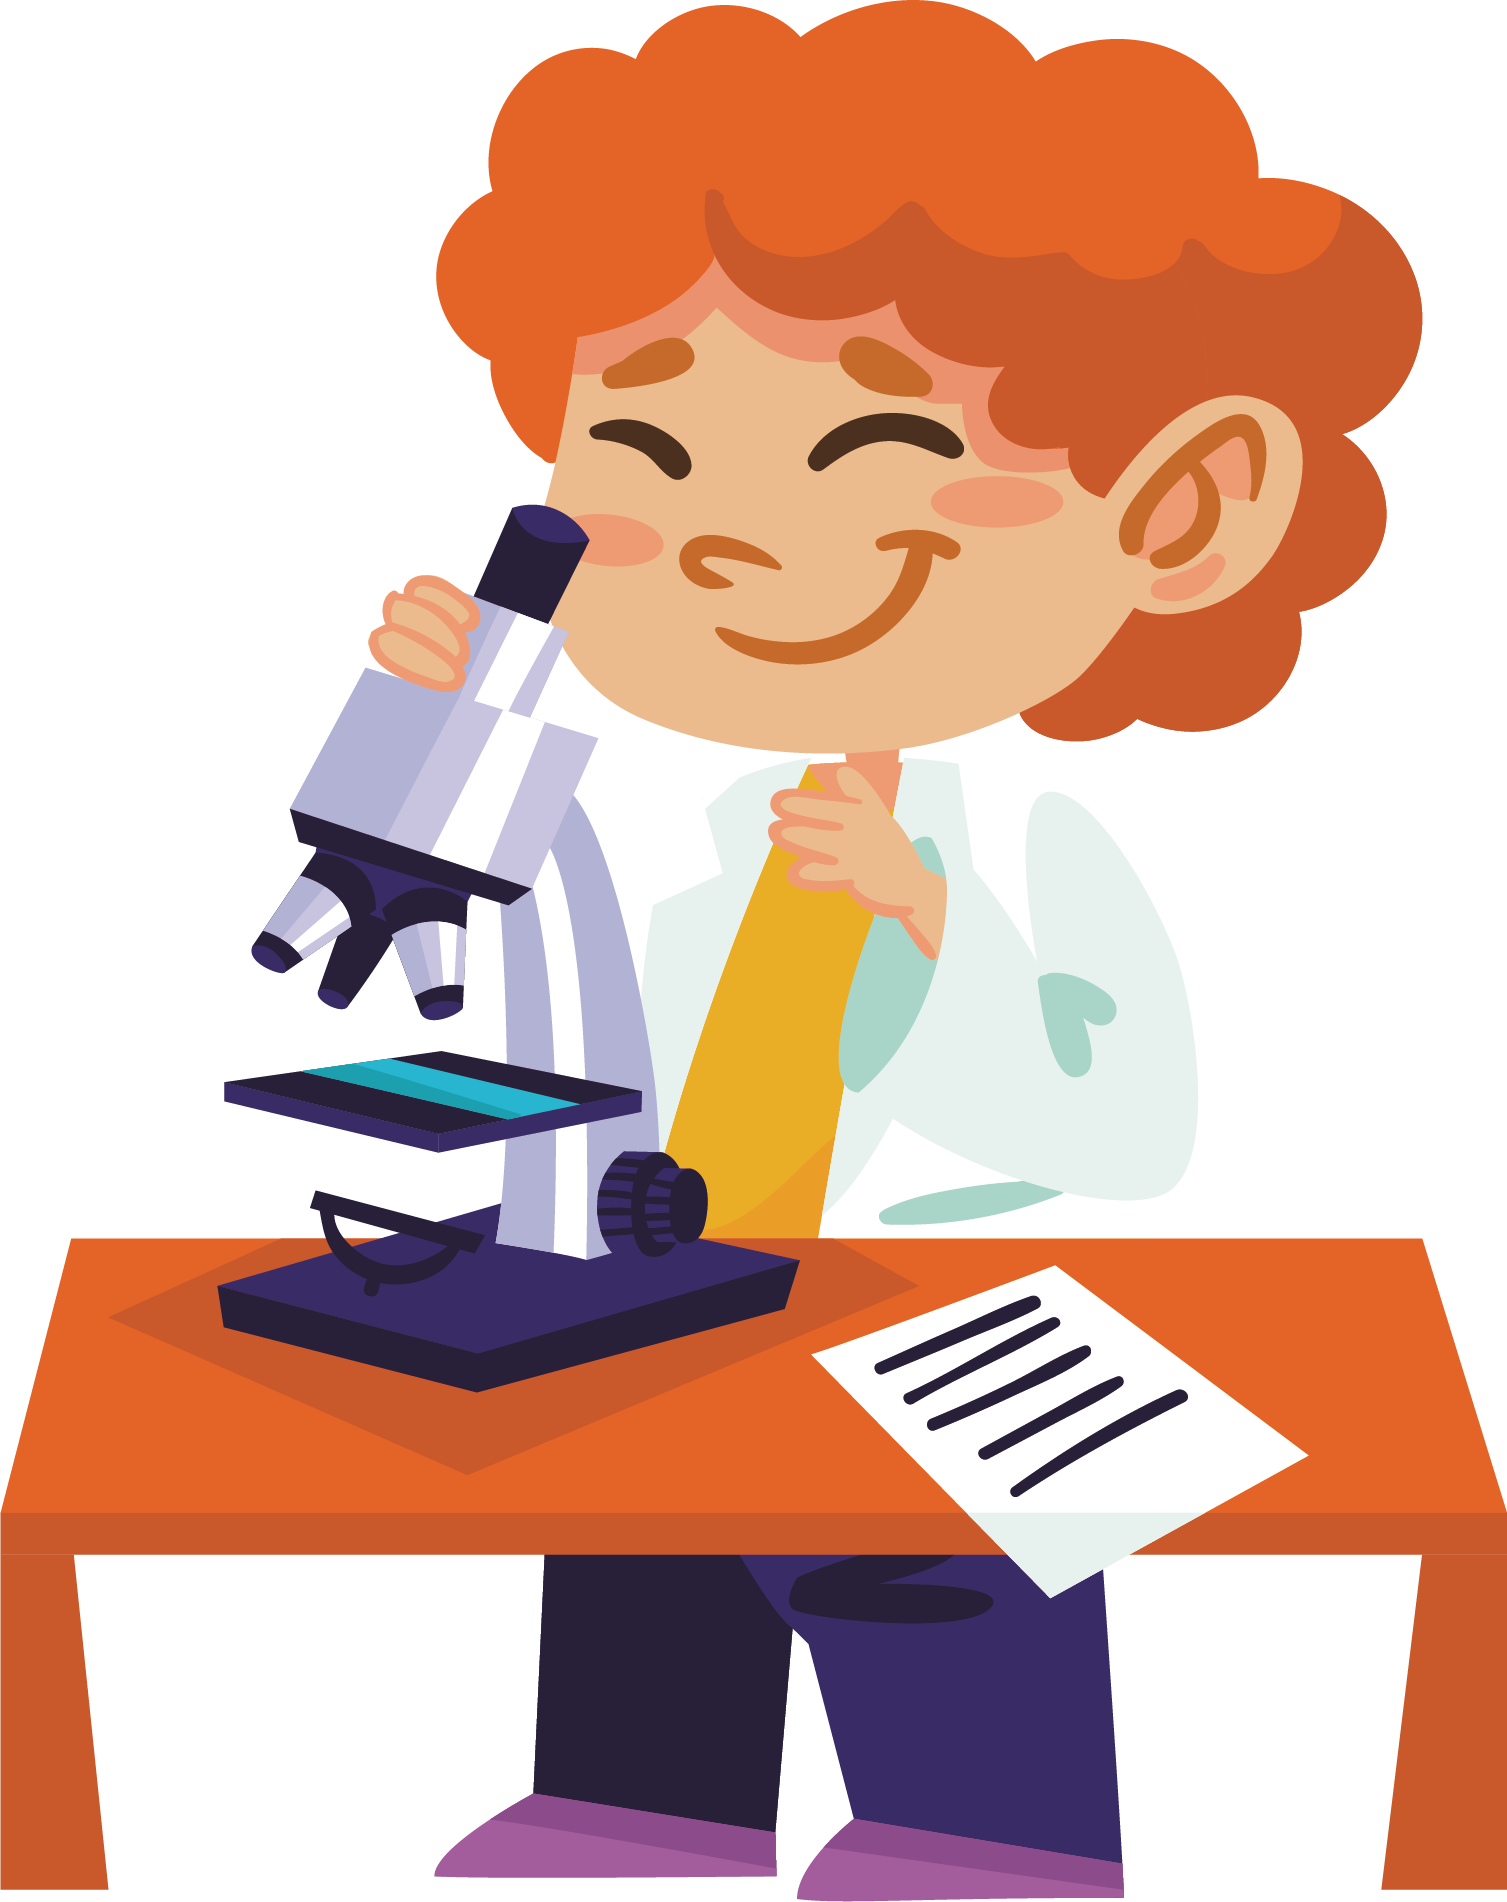 Apple science experiment clipart clip art free Experiment Science Illustration - Scientific experiment scientist ... clip art free